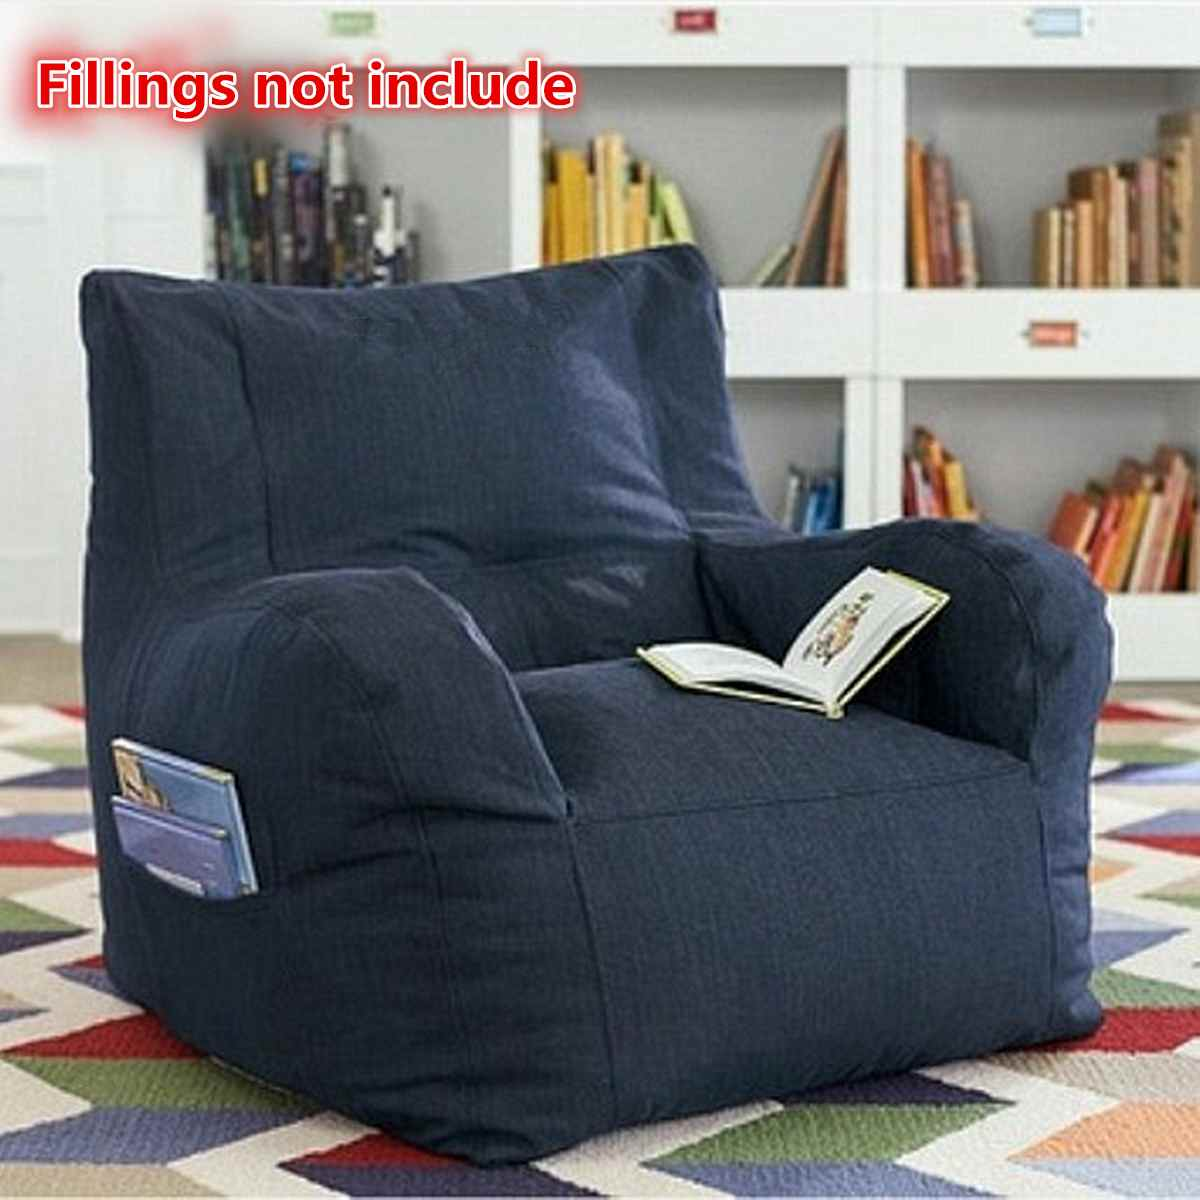 Large Bean Bag Sofa Cover Lounger Chair Sofa Living Room Bedroom Furniture Without Filler Beanbag Bed Couch Lazy Tatami